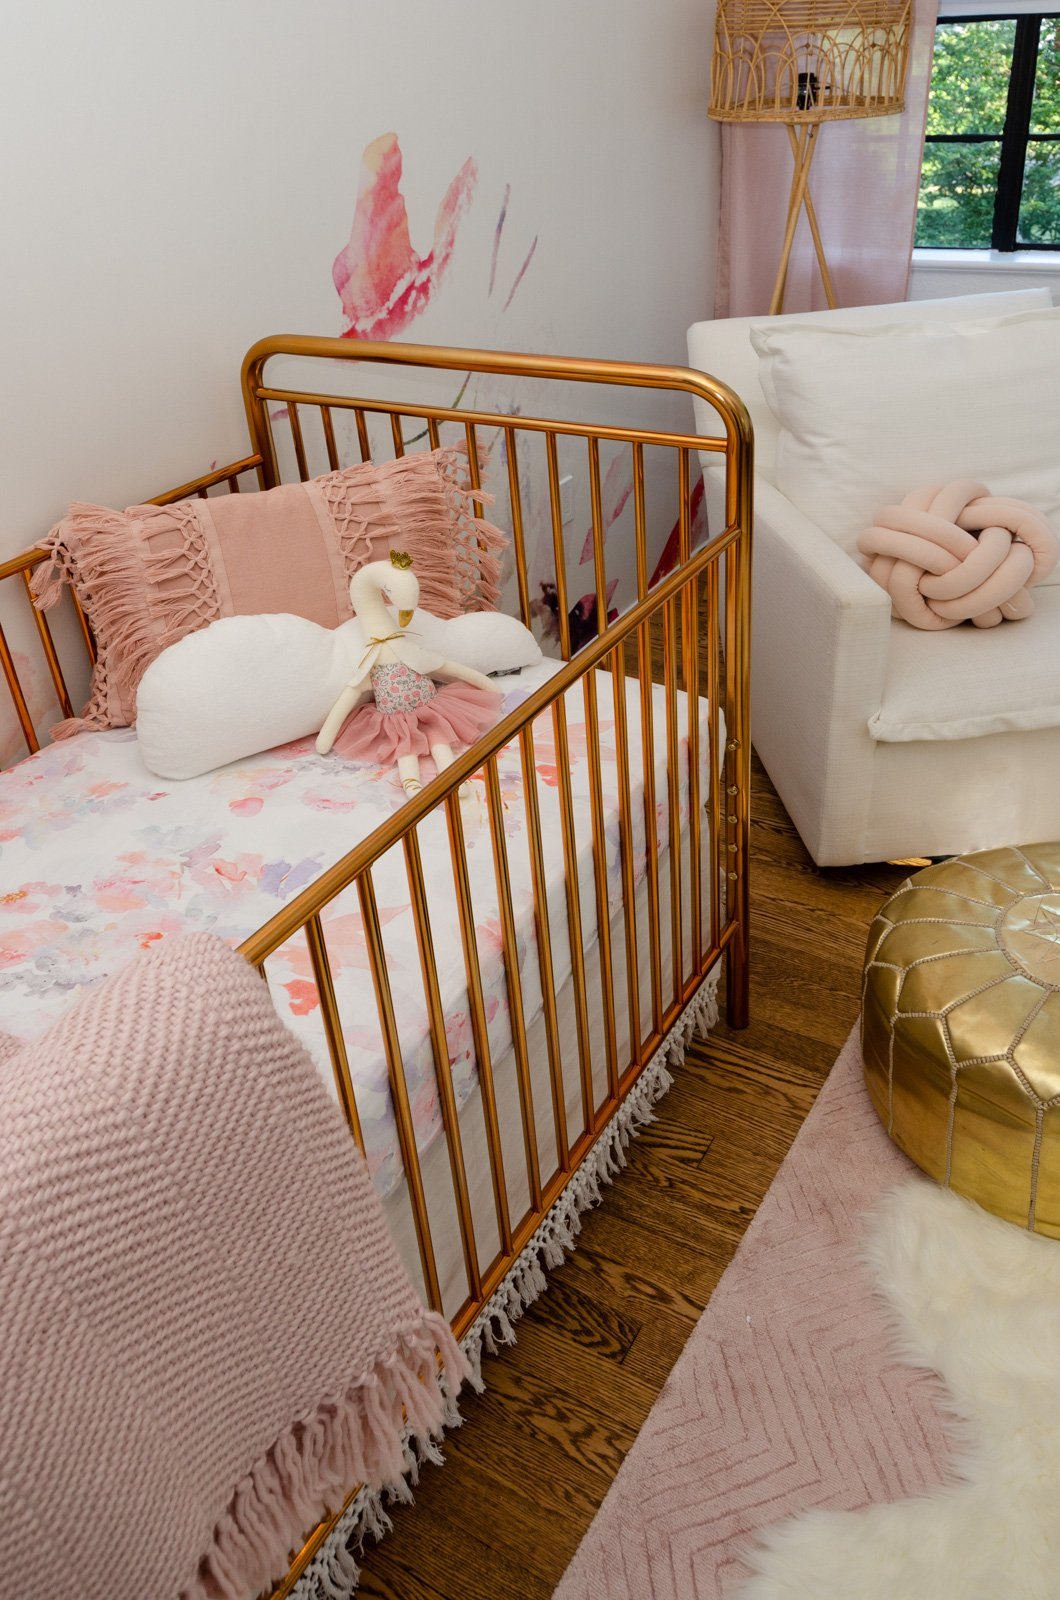 A Modern Take On A Golden Oldie The Jubilee 3 In 1 Convertible Metal Crib By Babyletto Combines Sleek Lines Curved Edges And A Pol Cribs Metal Crib Gold Crib